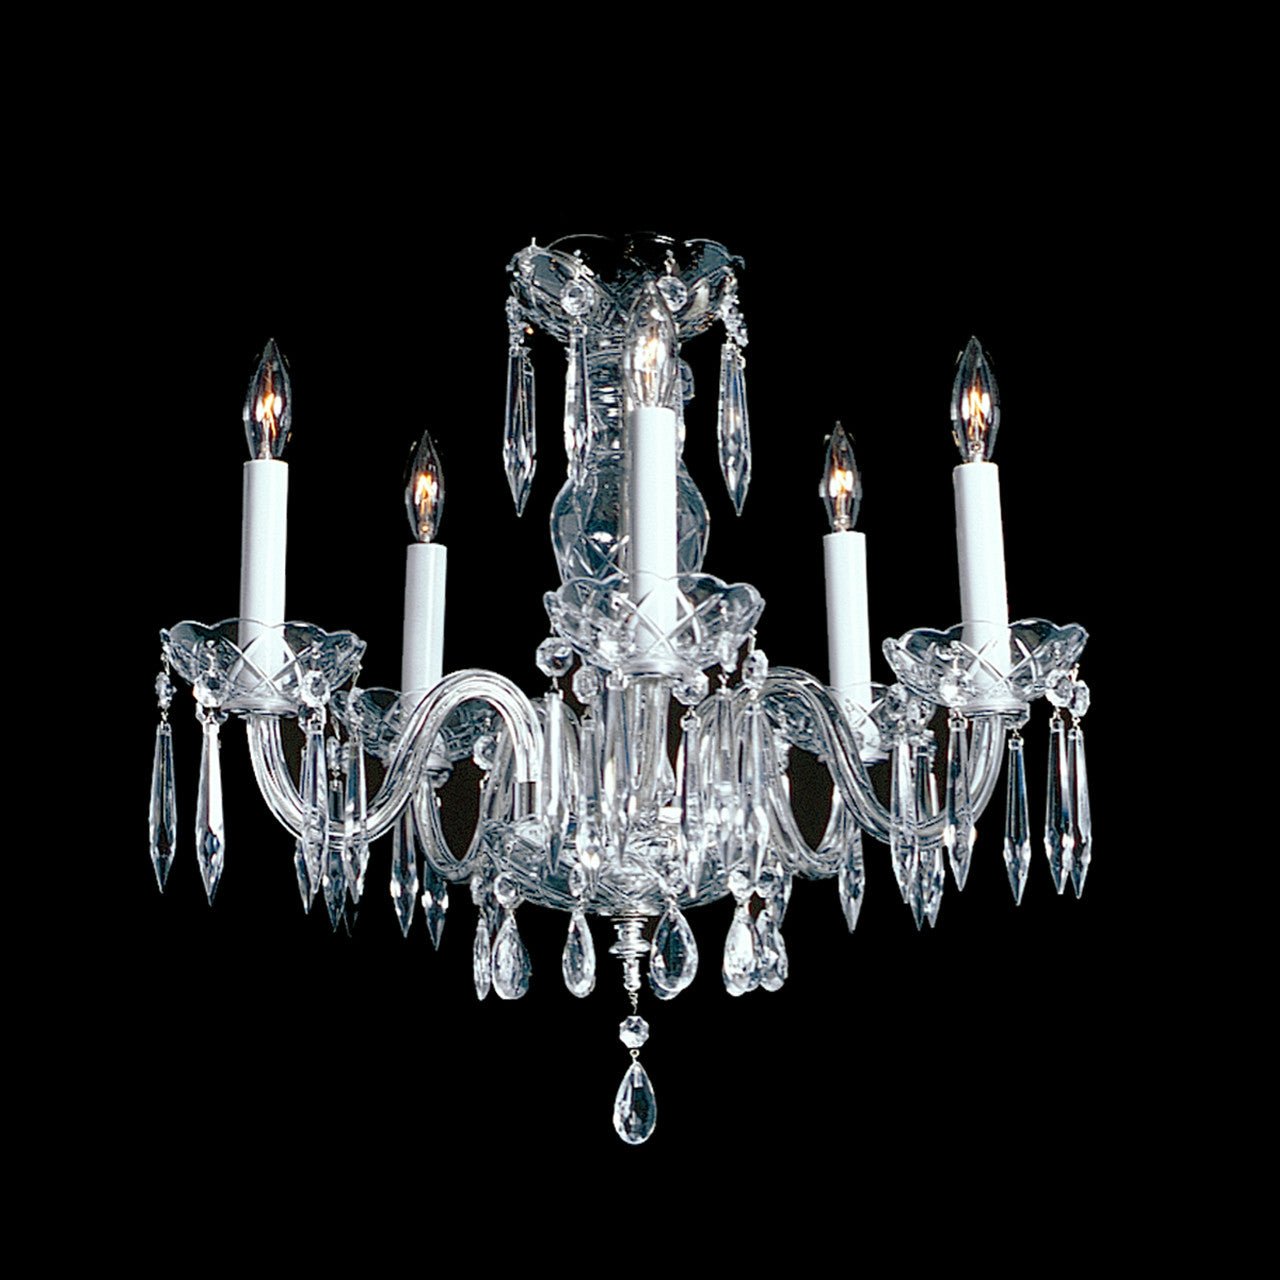 Mabel 5 light crystal chandelier 18 x 15 kings chandelier co 5 light small crystal chandelier mabel arubaitofo Images